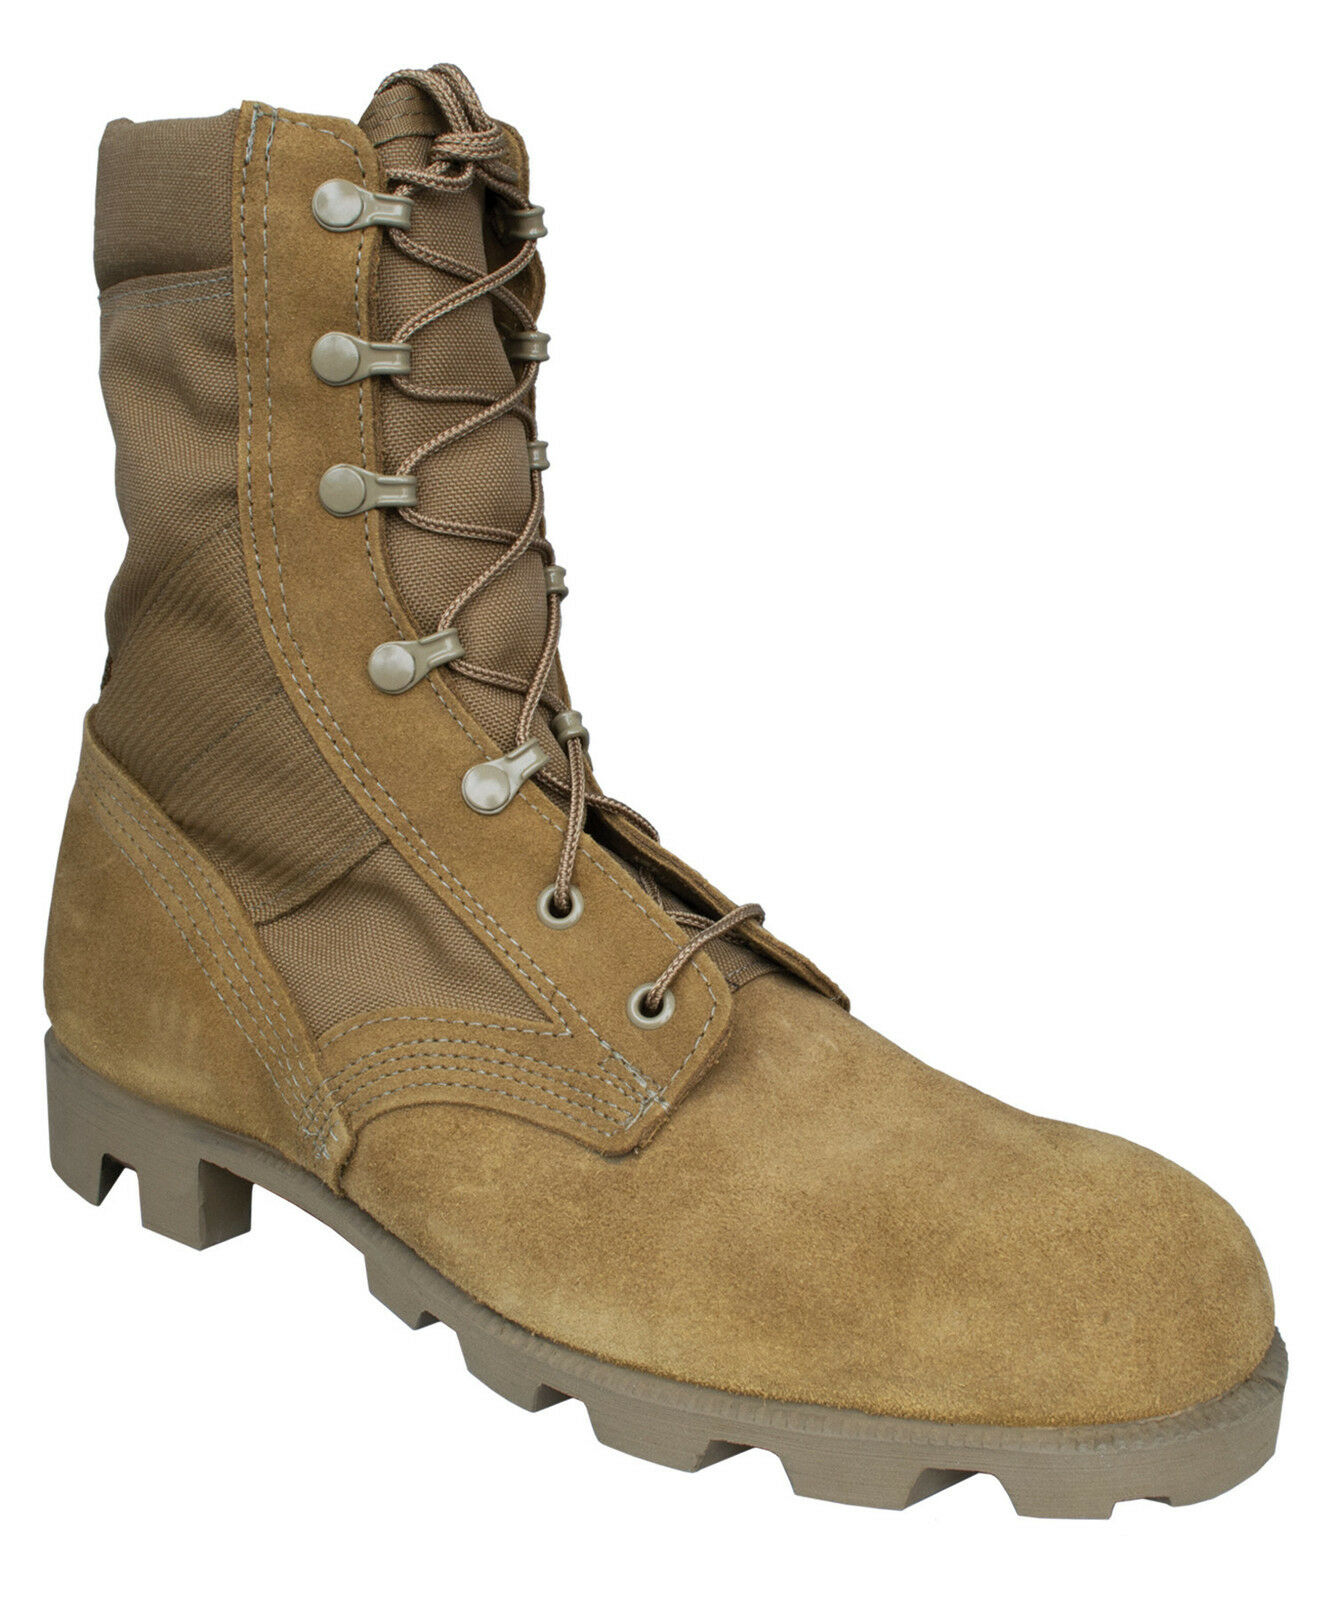 McRae Footwear 8190 8  Suede Hot Weather Coyote Tan Panama Military Combat Stiefel